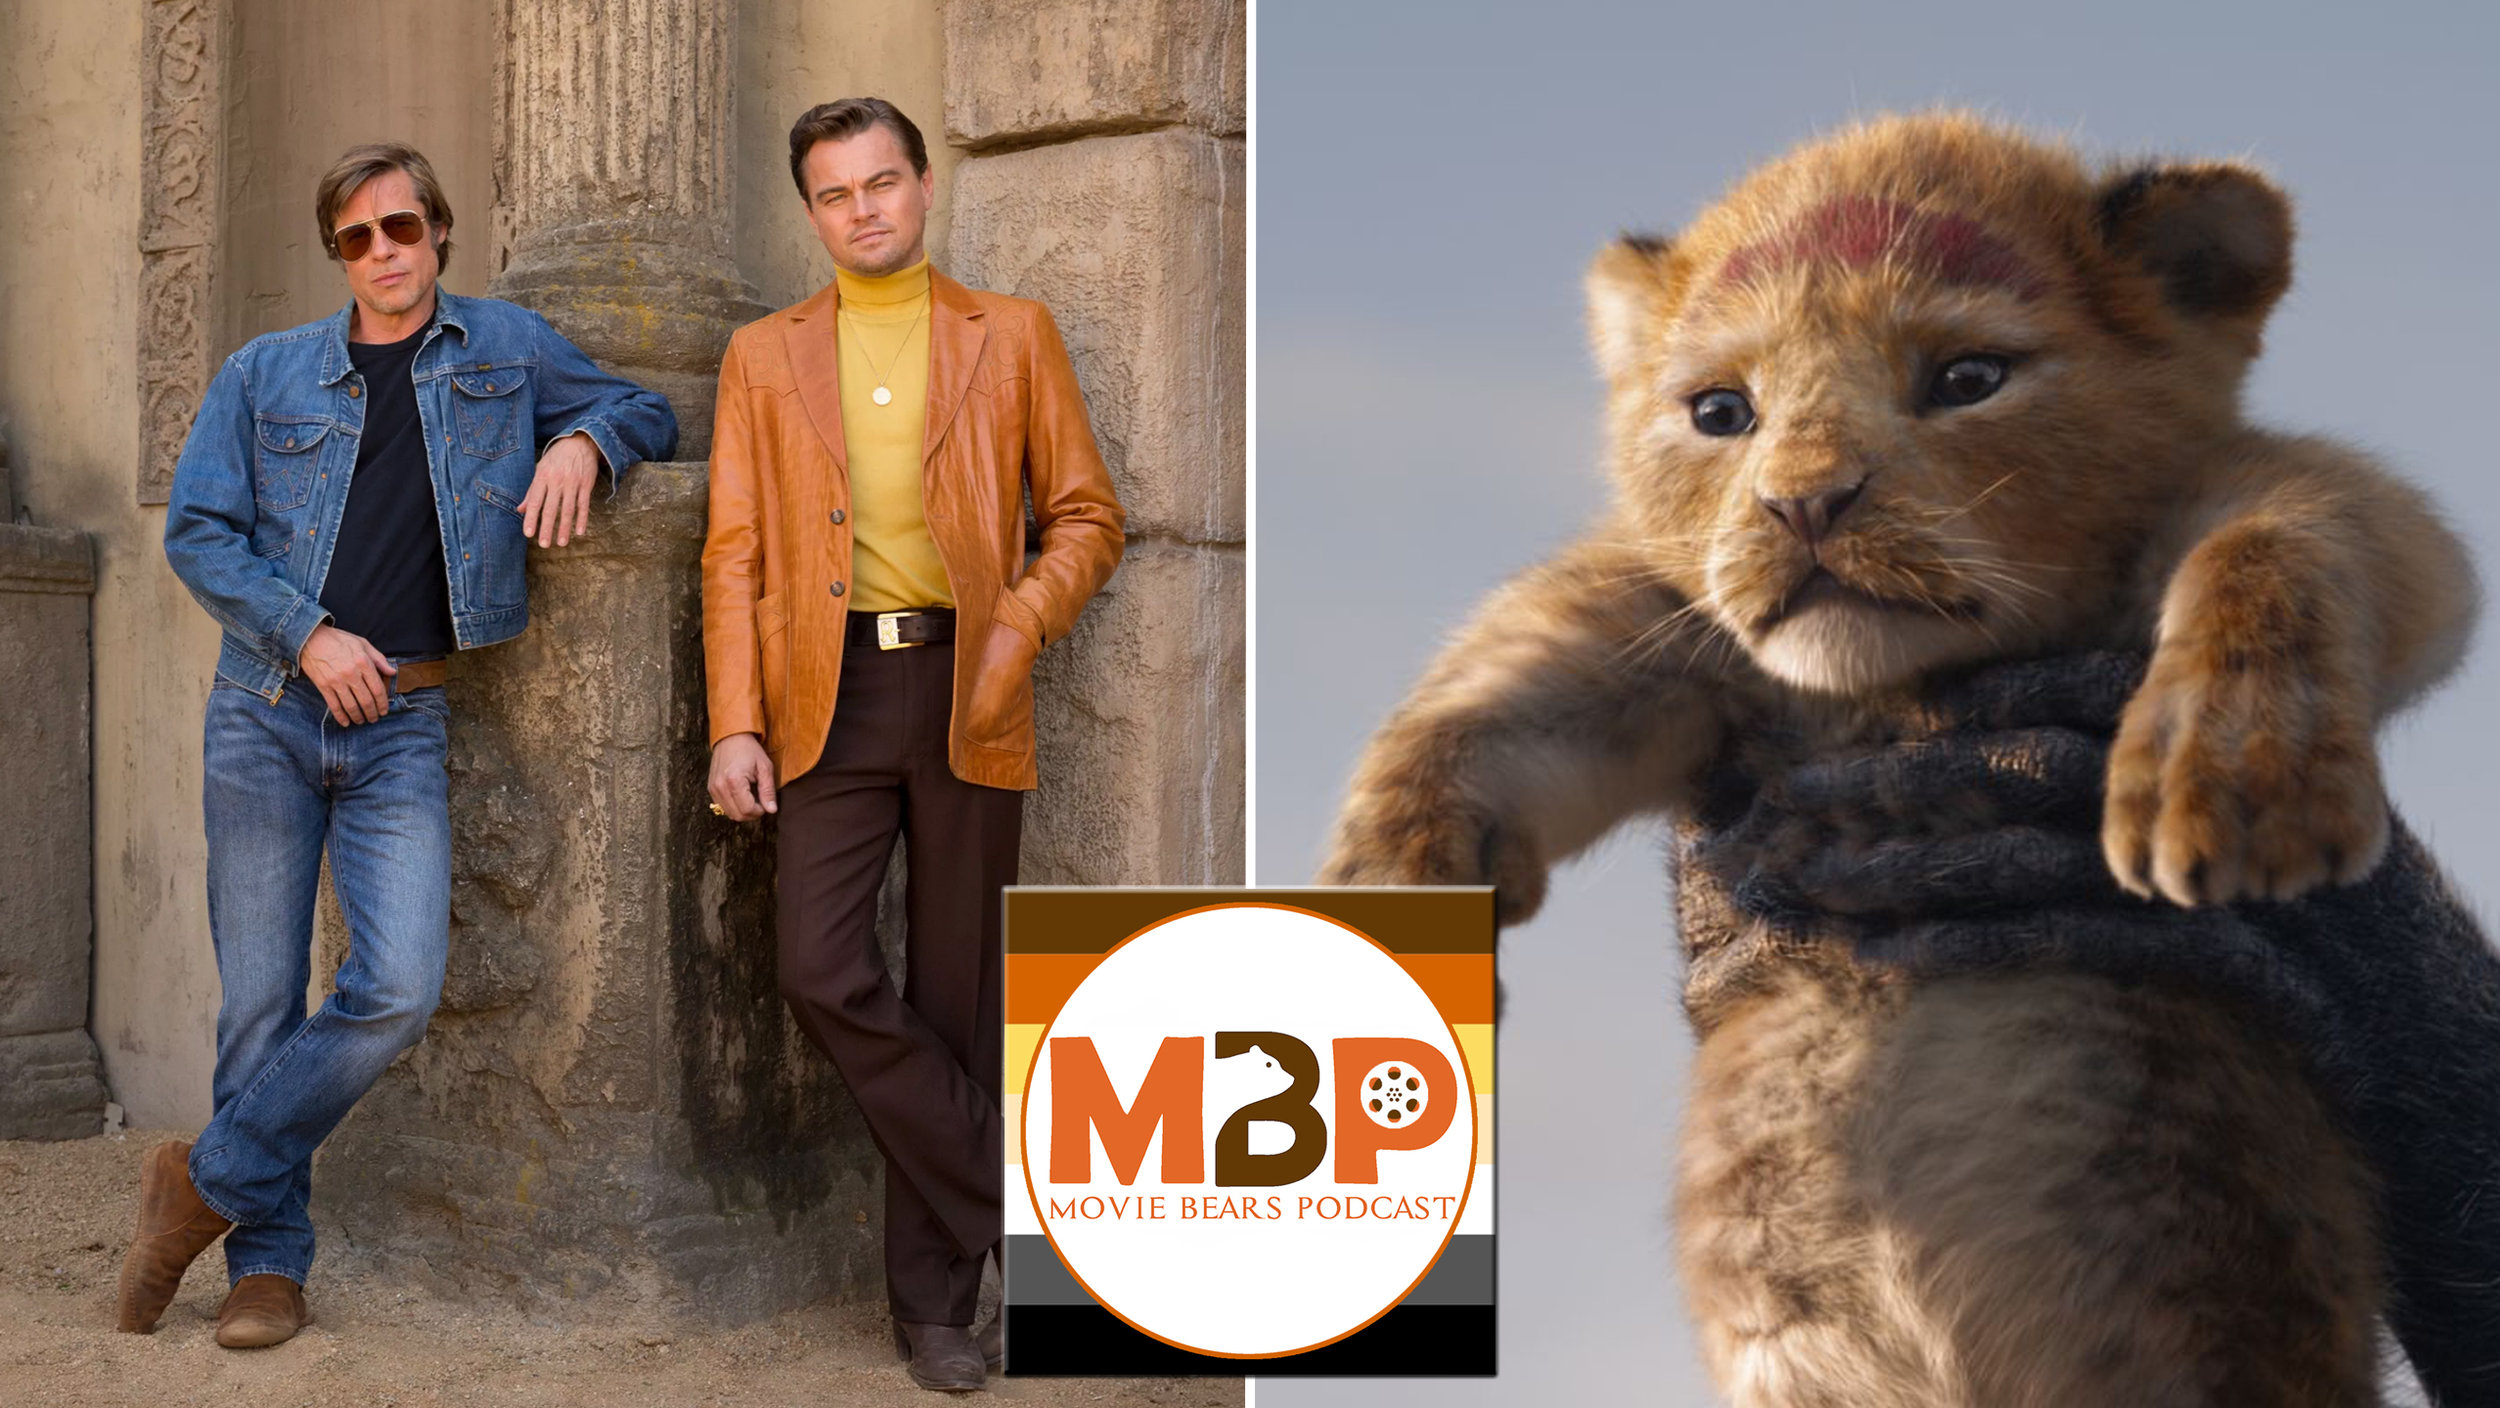 MBP e332 - 'The Lion King' and 'Once Upon a Time In … Hollywood' (7/29/19)    The circle of life is renewed as the bears return for another episode of movie reviews. On this episode, we take a look at the 2019 remake of THE LION KING, then we check in with the latest Quentin Tarantino movie, ONCE UPON A TIME IN … HOLLYWOOD. Thanks again to all who made it extra fun by doing the live chat.